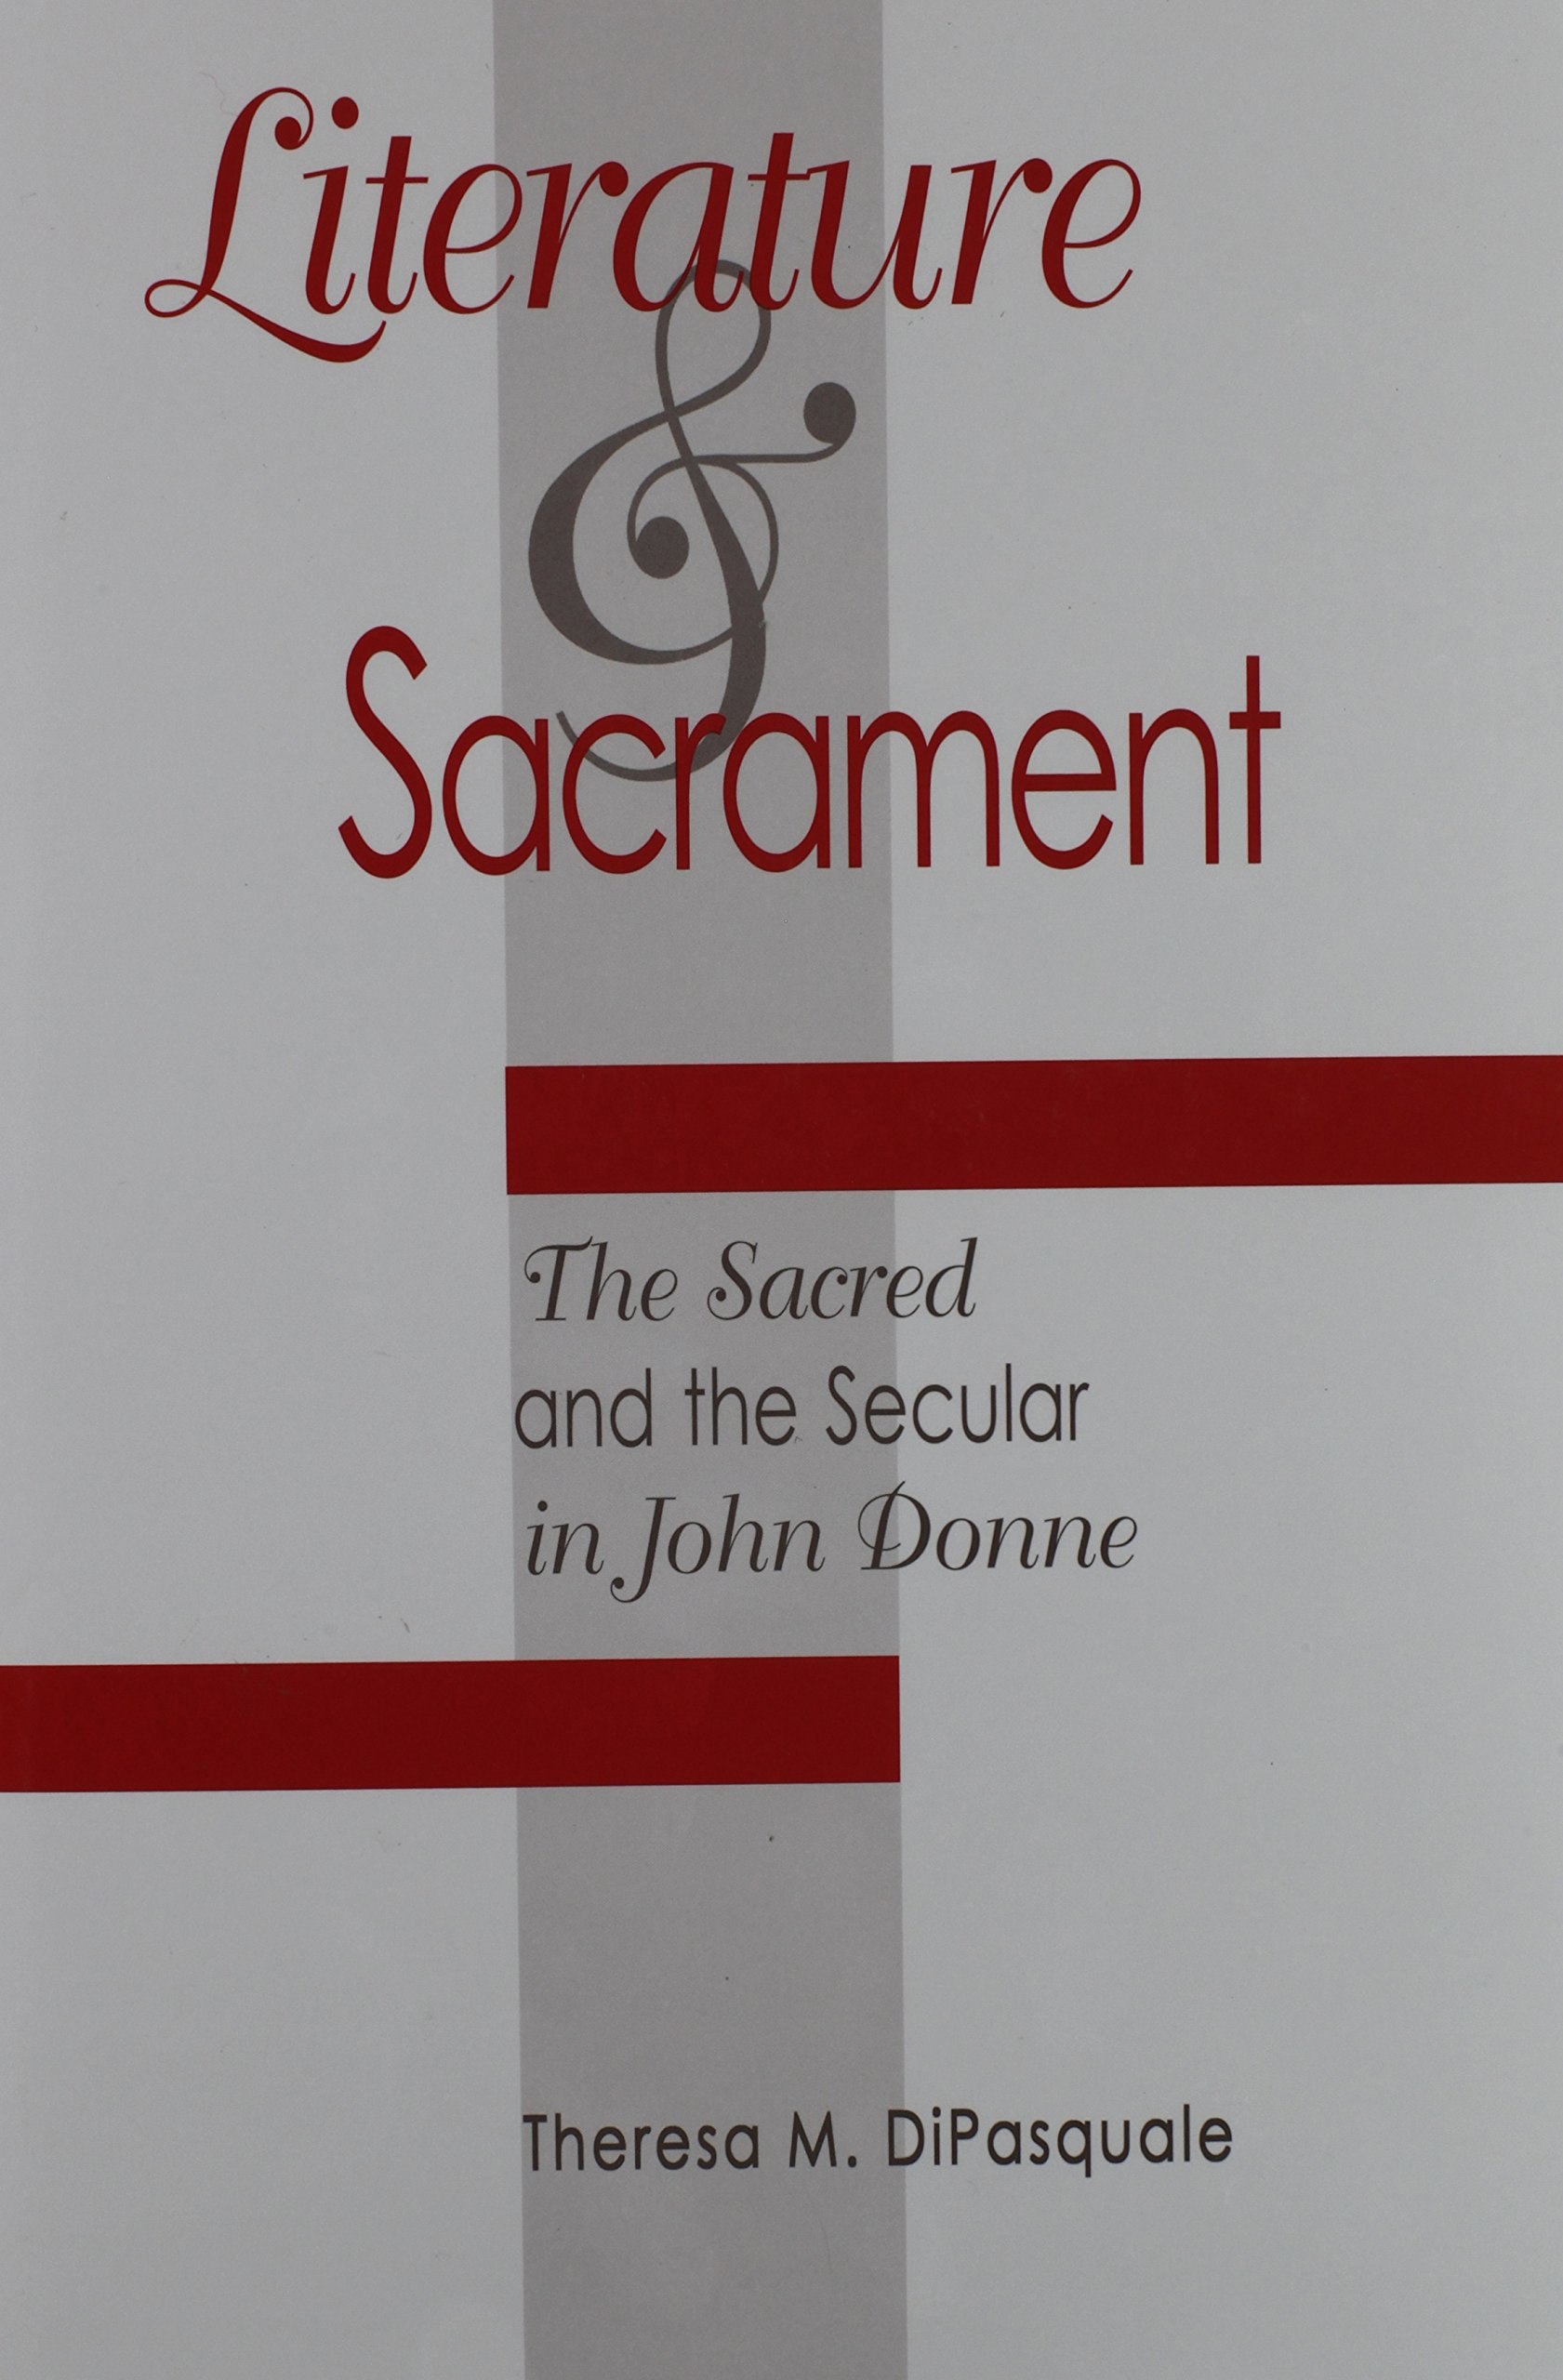 literature and sacrament the sacred and the secular in john literature and sacrament the sacred and the secular in john donne medieval and renaissance literary studies theresa m dipasquale 9780820703091